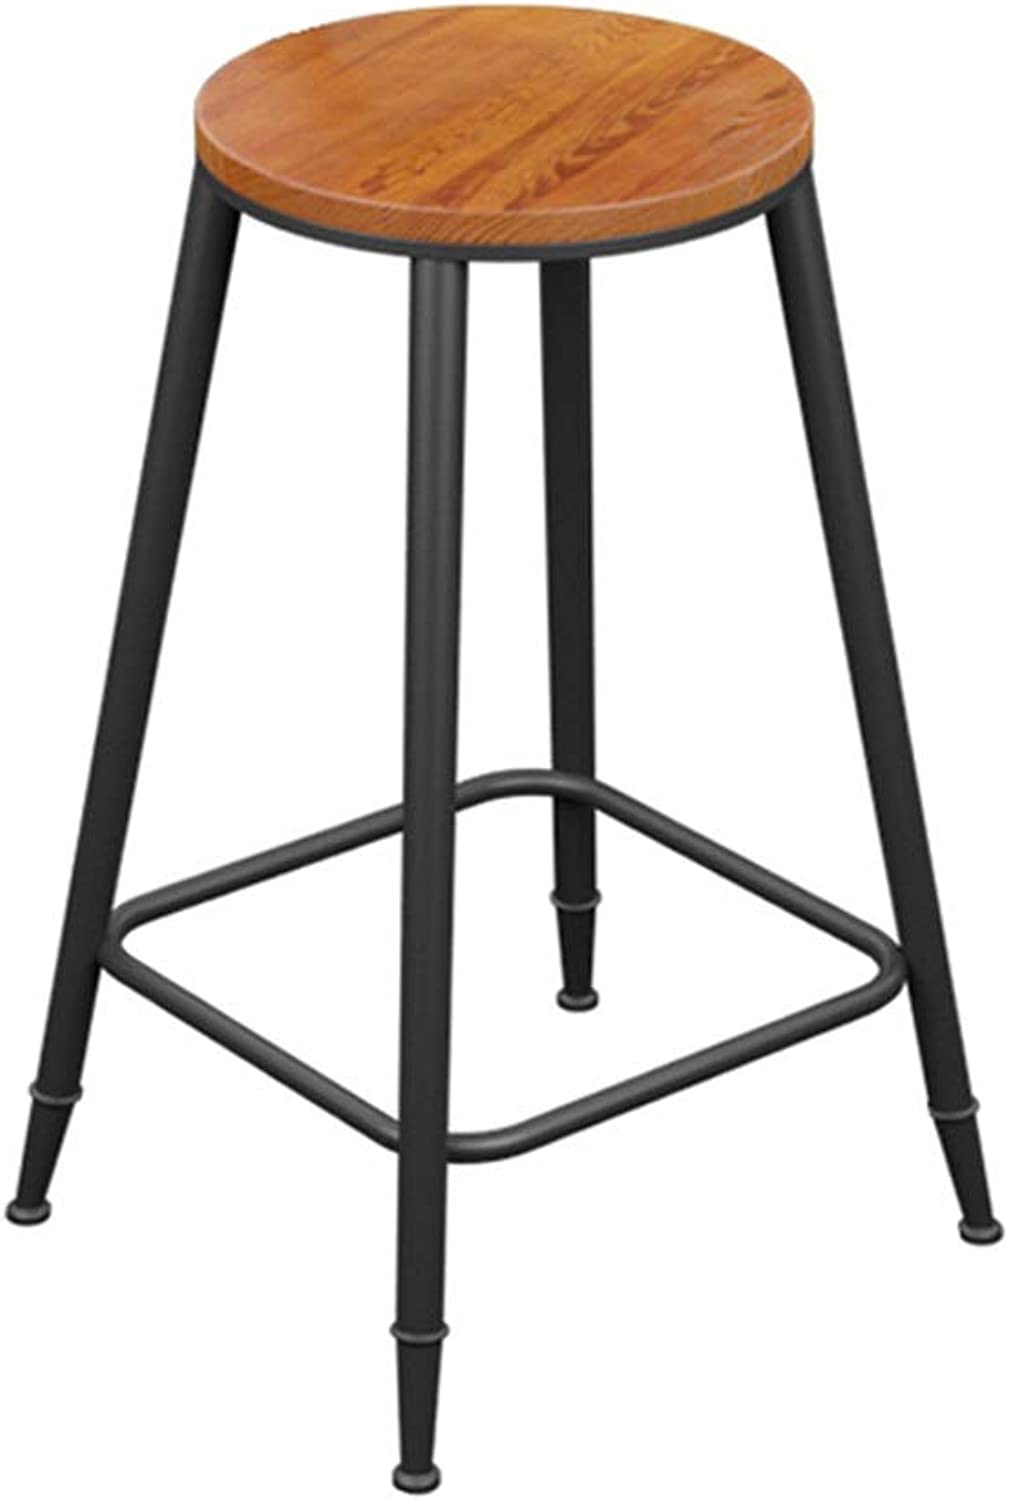 Round Barstool Iron Breakfast Dining Stool for Kitchen Bar Counter Home Commercial Chair High Stool with Wooden Seat LOFT Industrial Style (Size   Height 73cm)